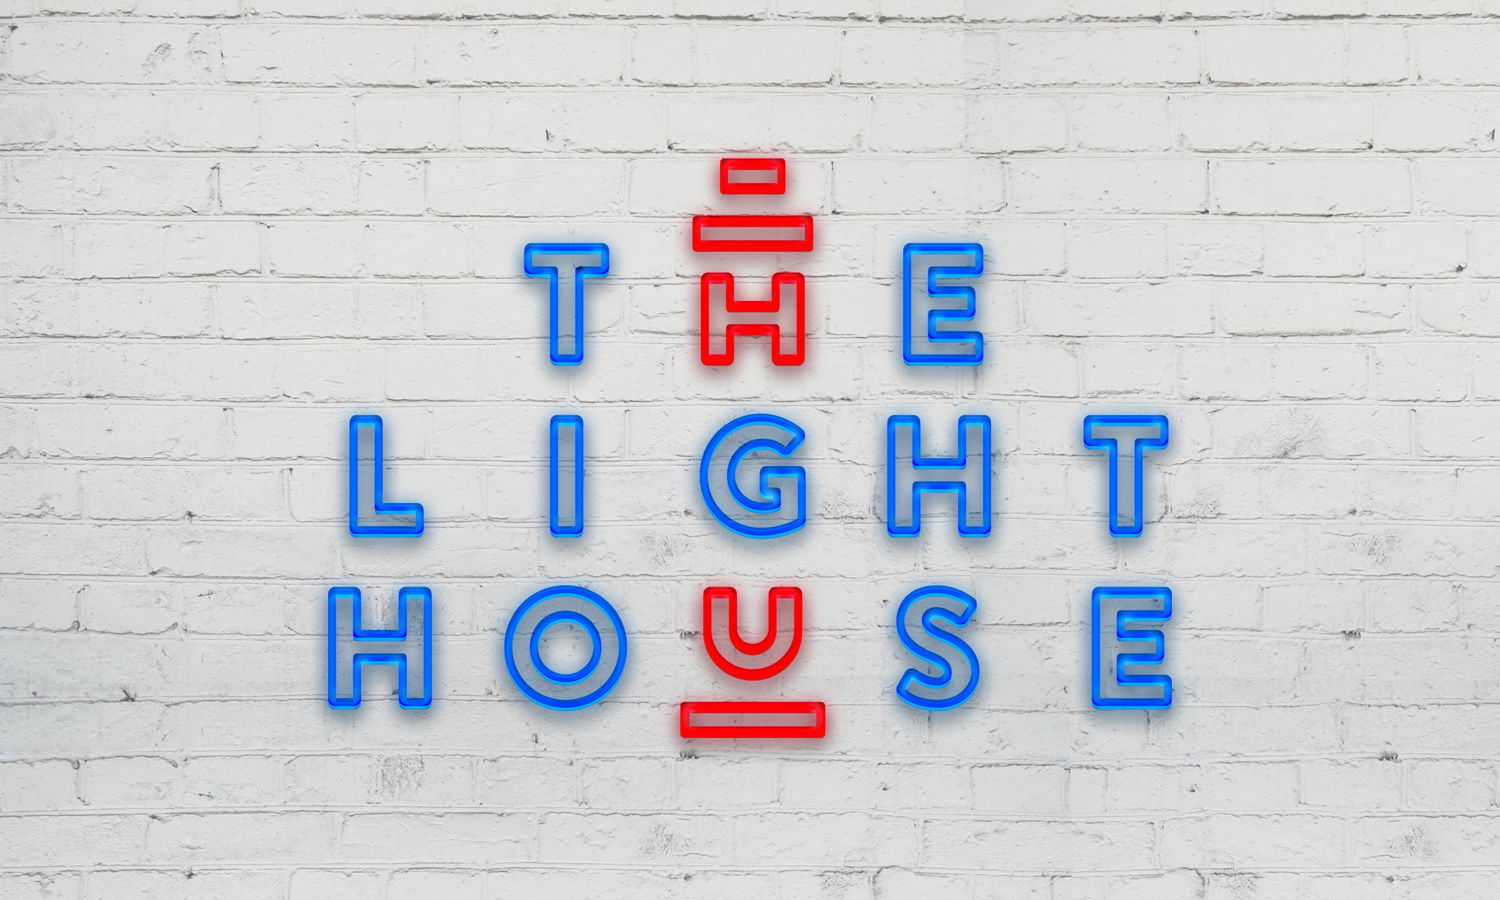 thelighthouse_06_neon